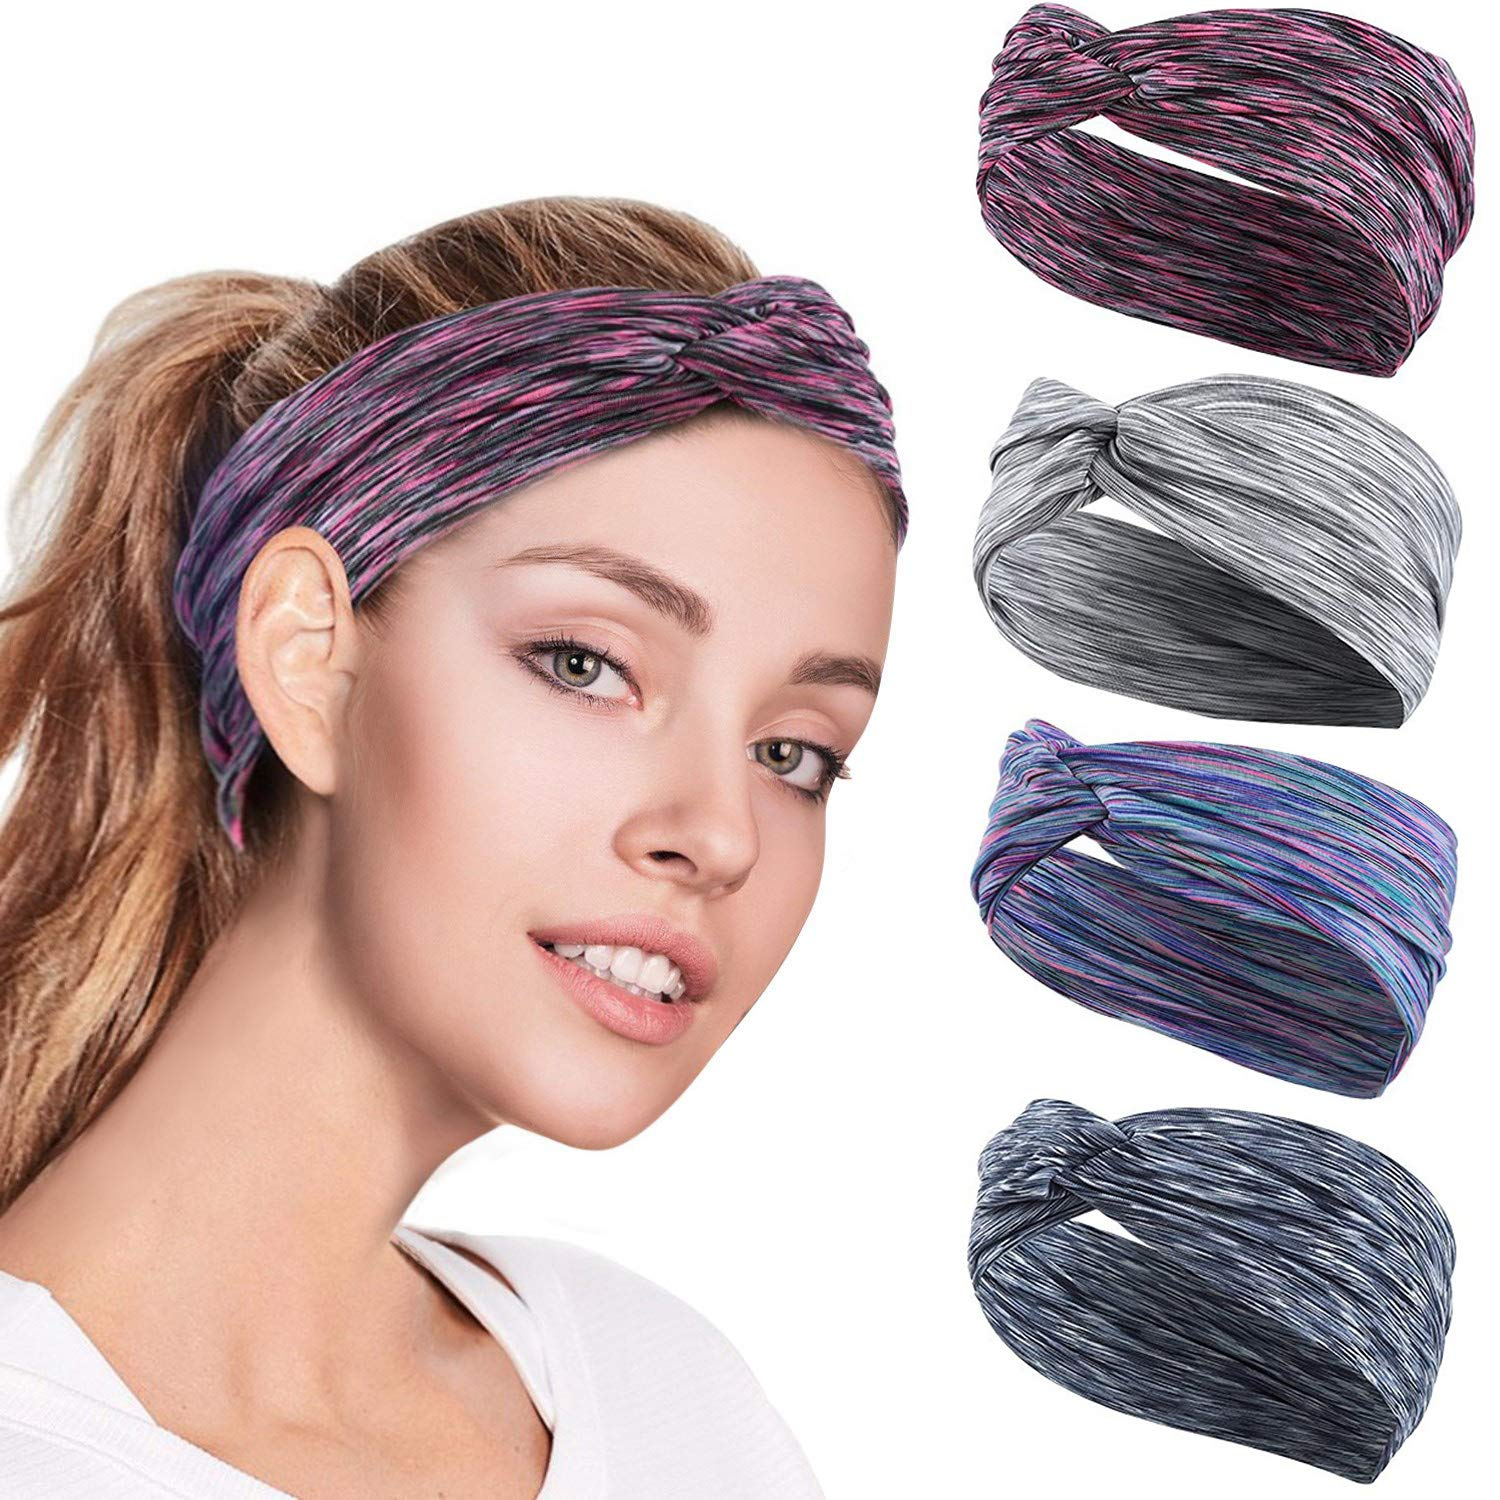 Girl's Accessories Women Plain Knitted Cross Headband Turban Girls Fashion Twisted Two Layers Elastic Fabric Hairband Hair Accessories Headwrap Large Assortment Girl's Hair Accessories